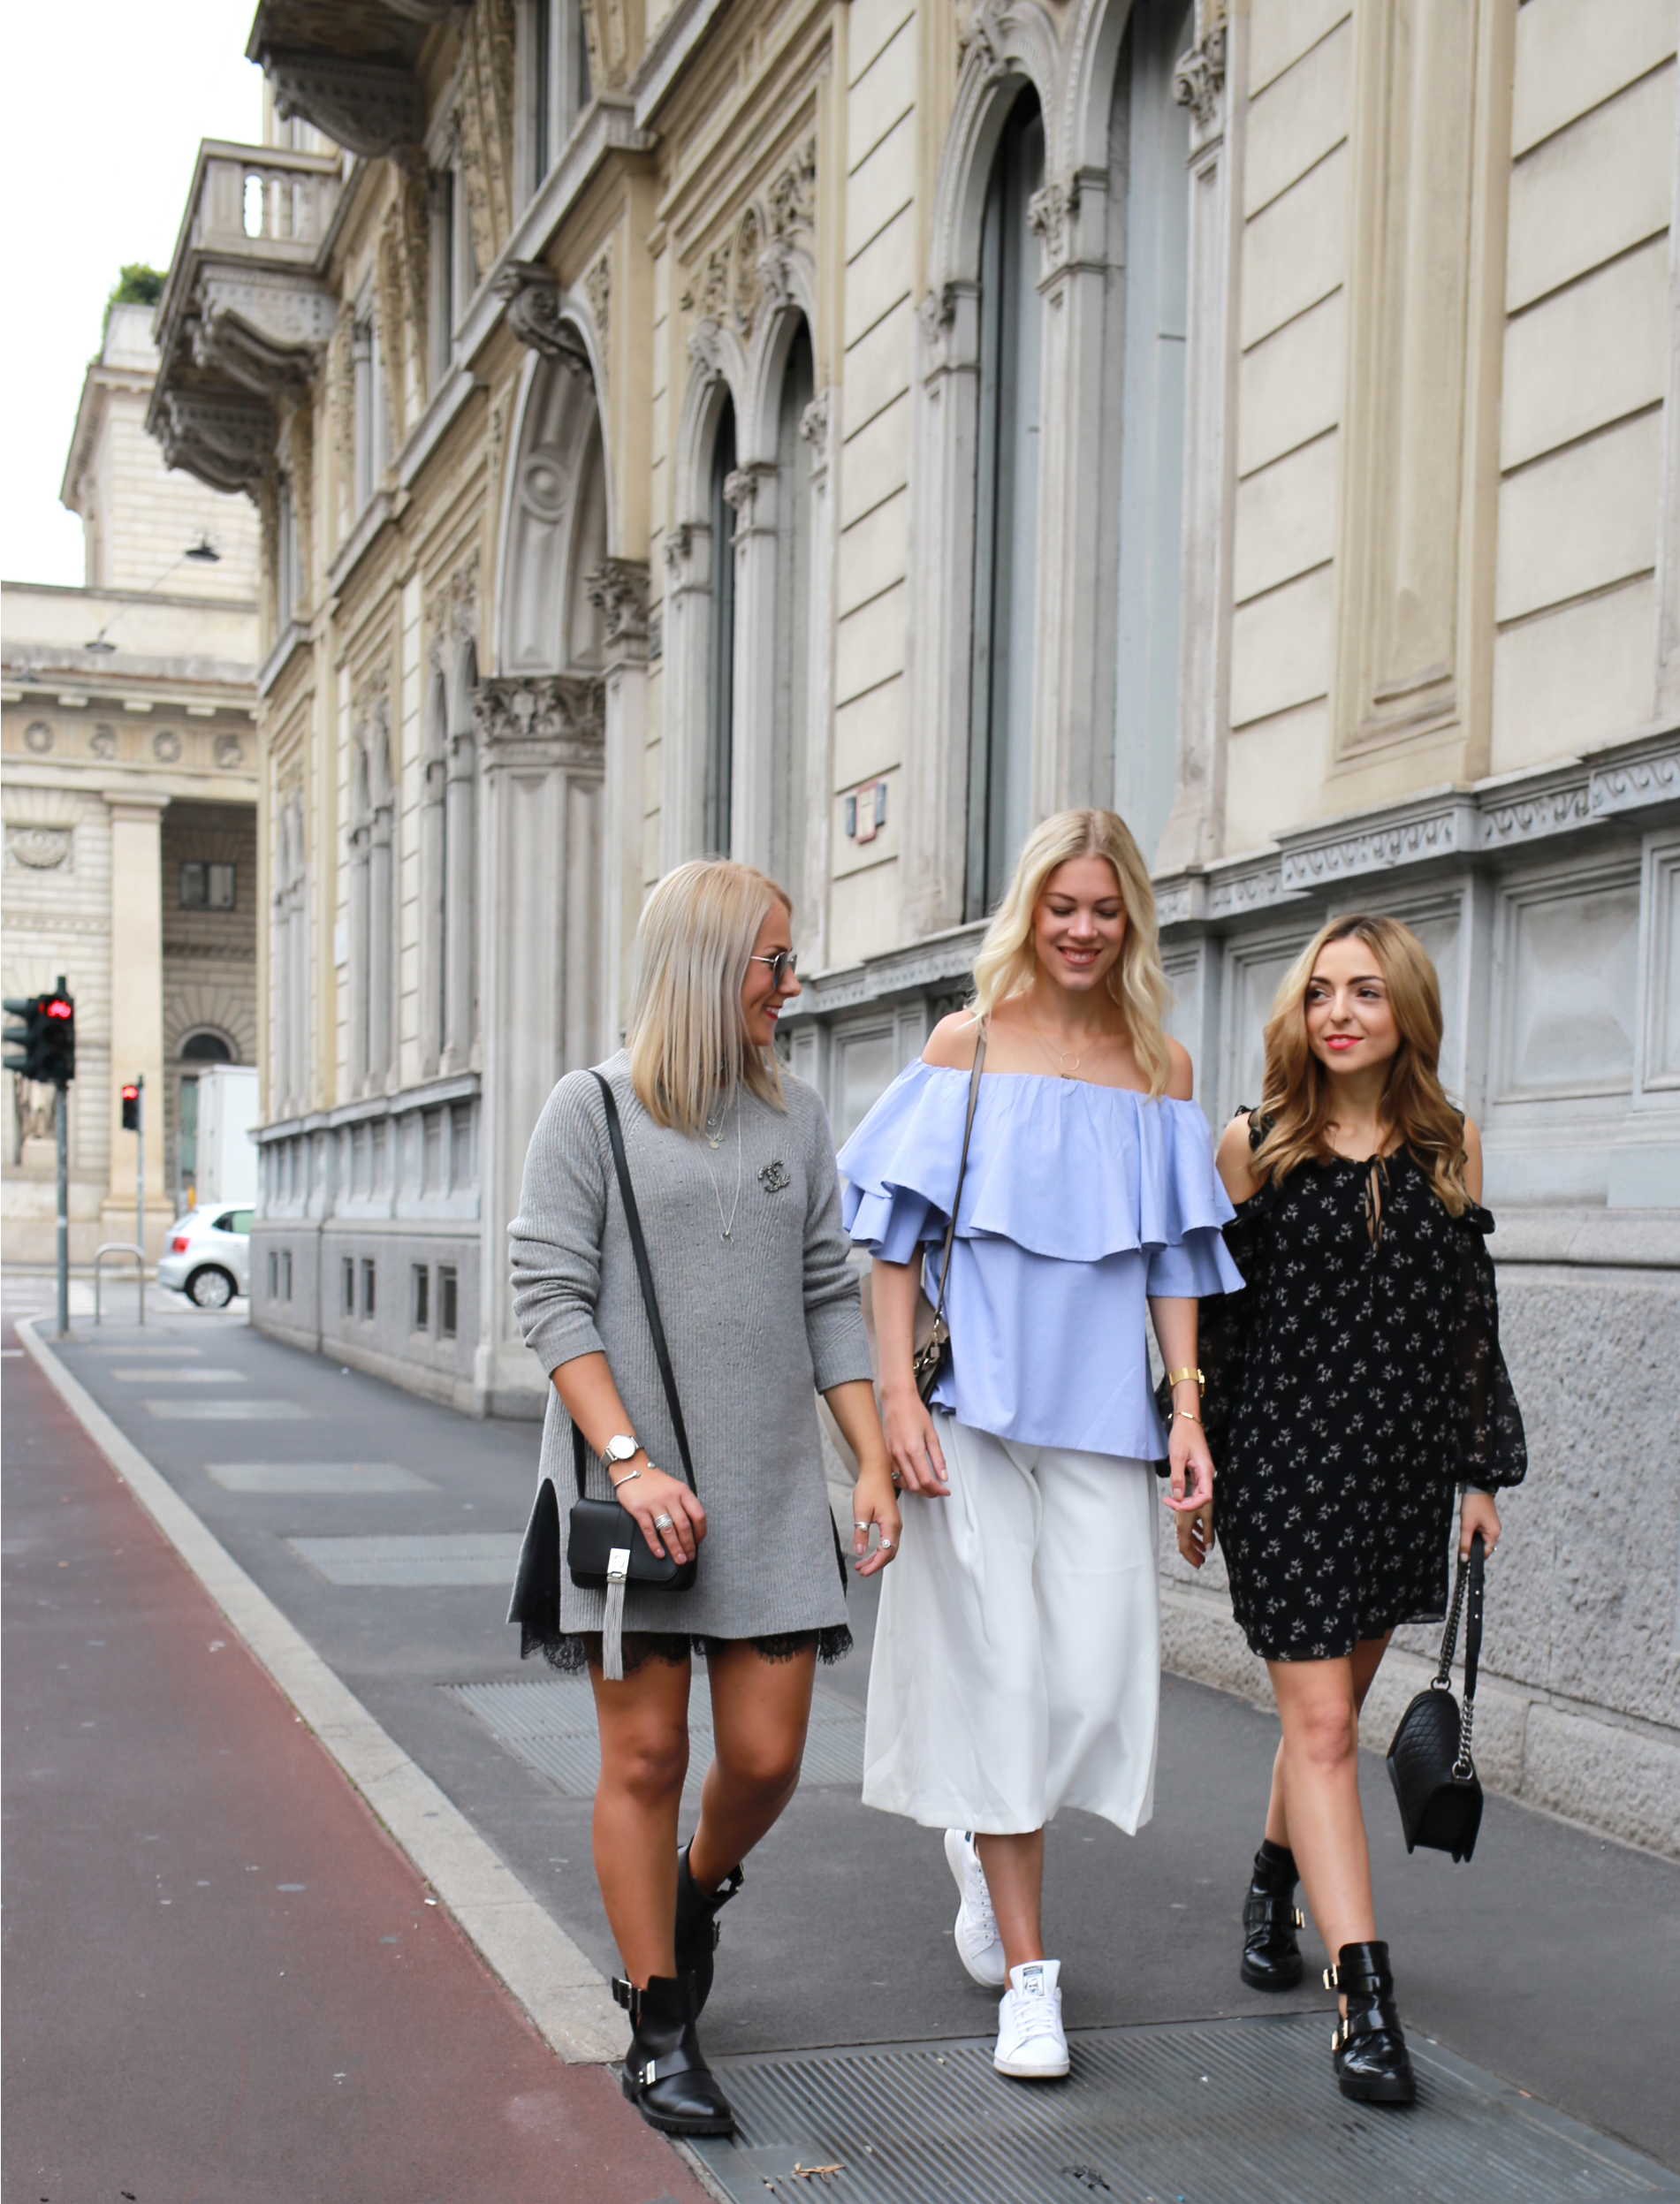 milan_fashion_week_streetstyles_verena_somehappyshoes